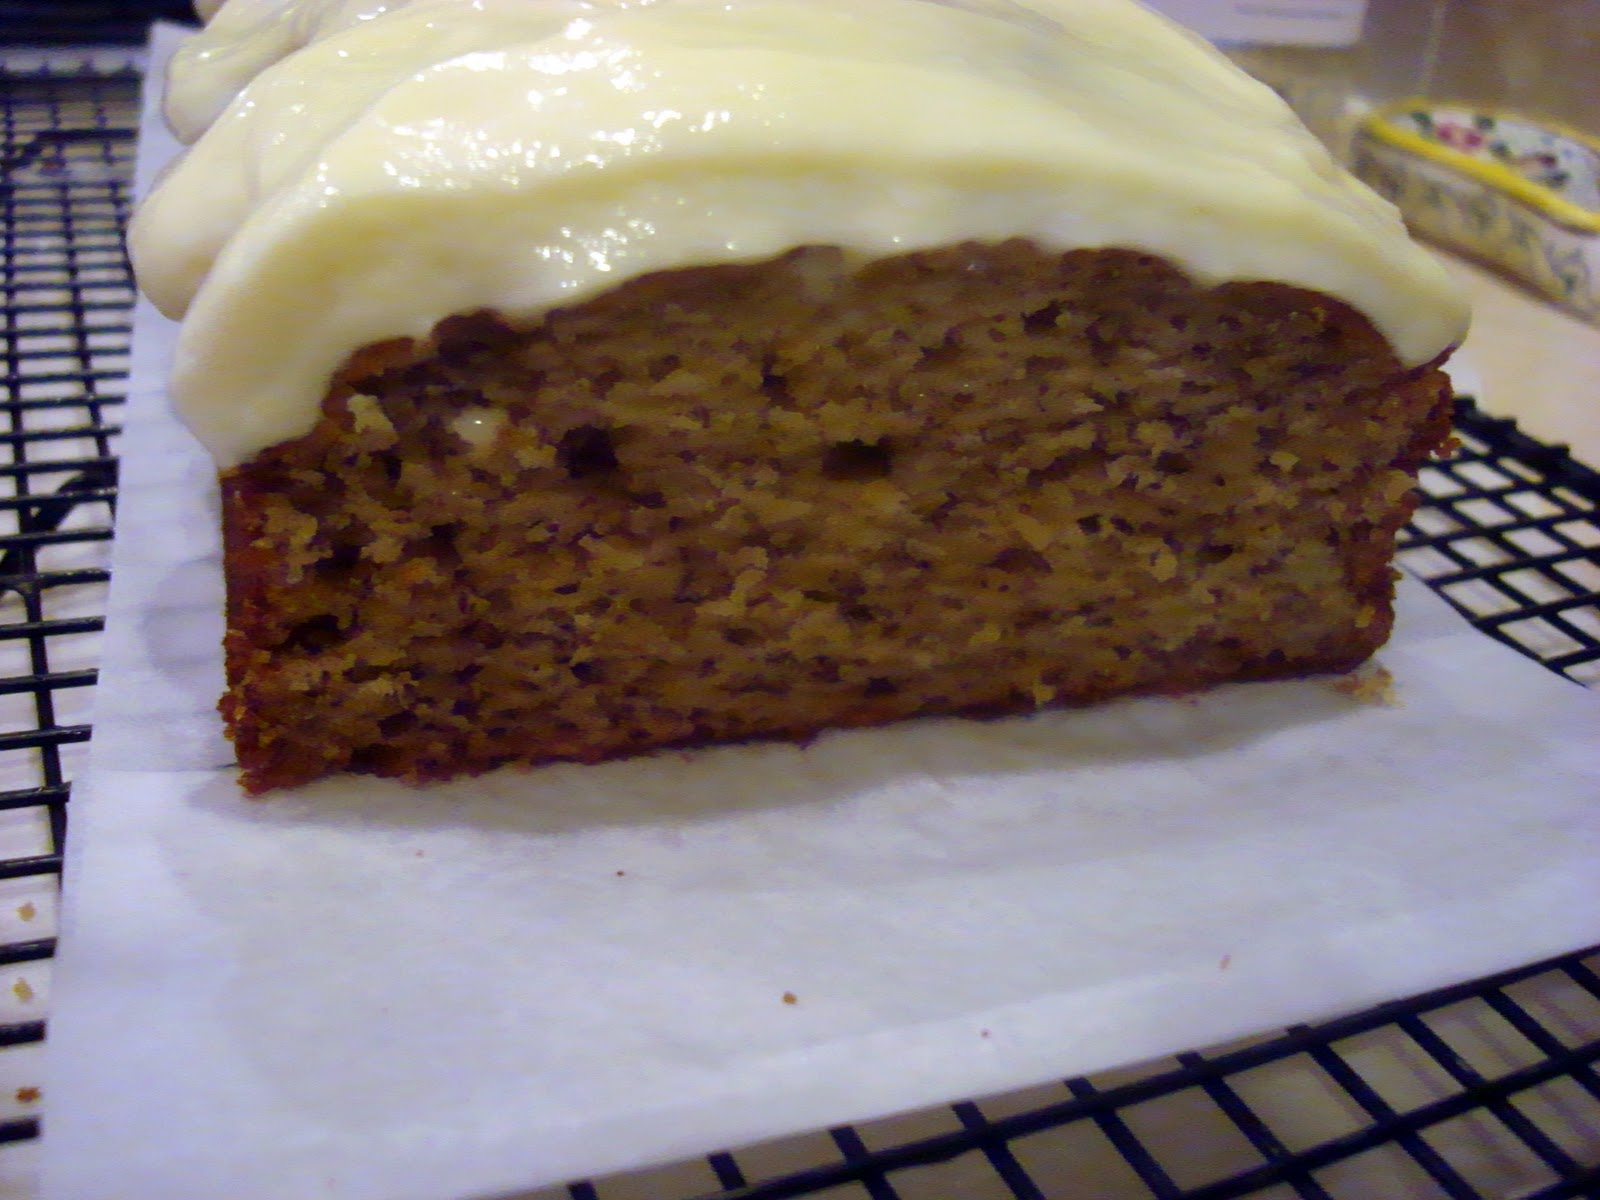 Icing Banana Cake Without Cream Cheese